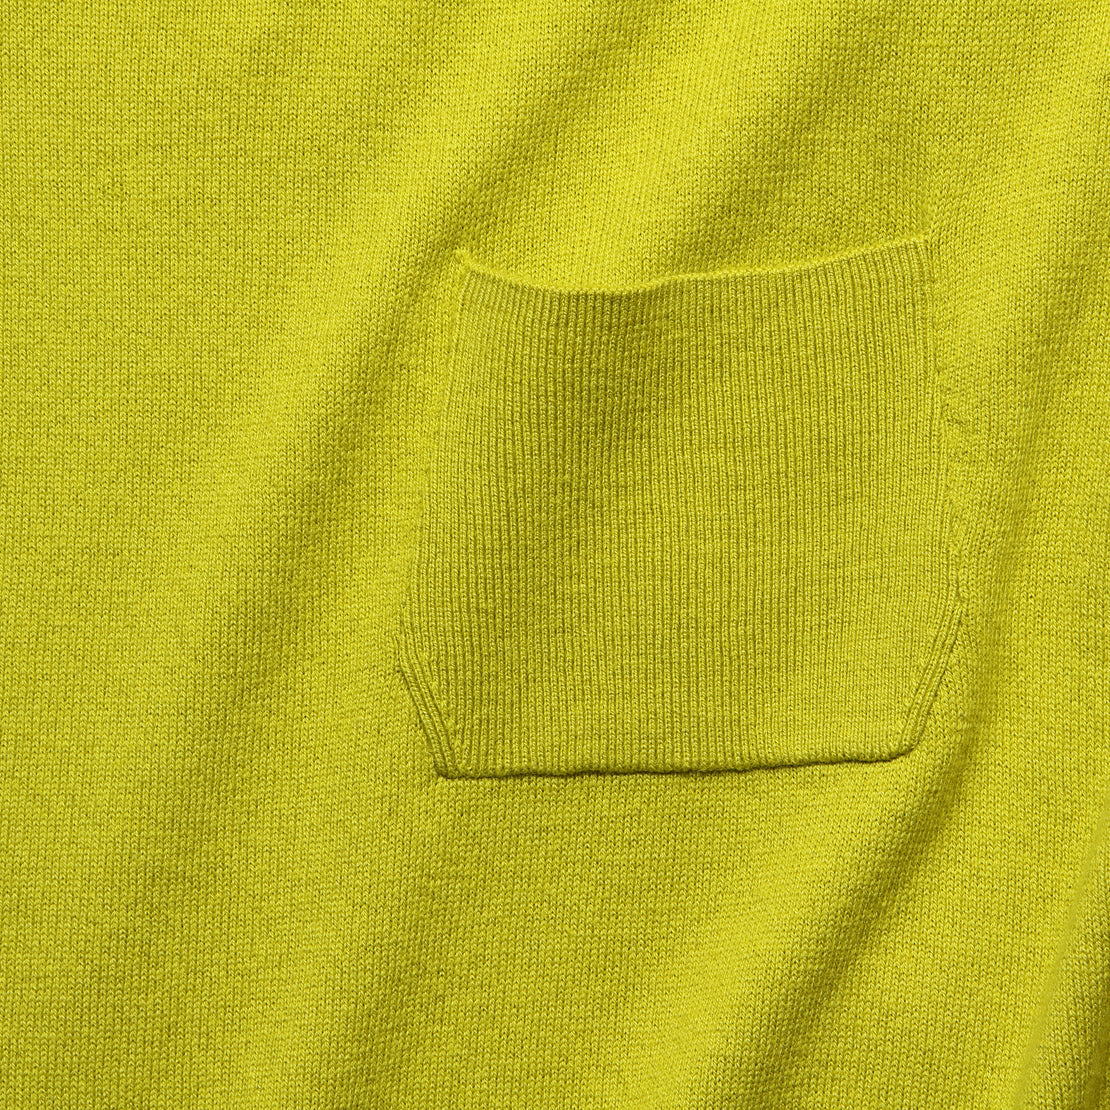 Cropped Pocket Sweater - Mustard